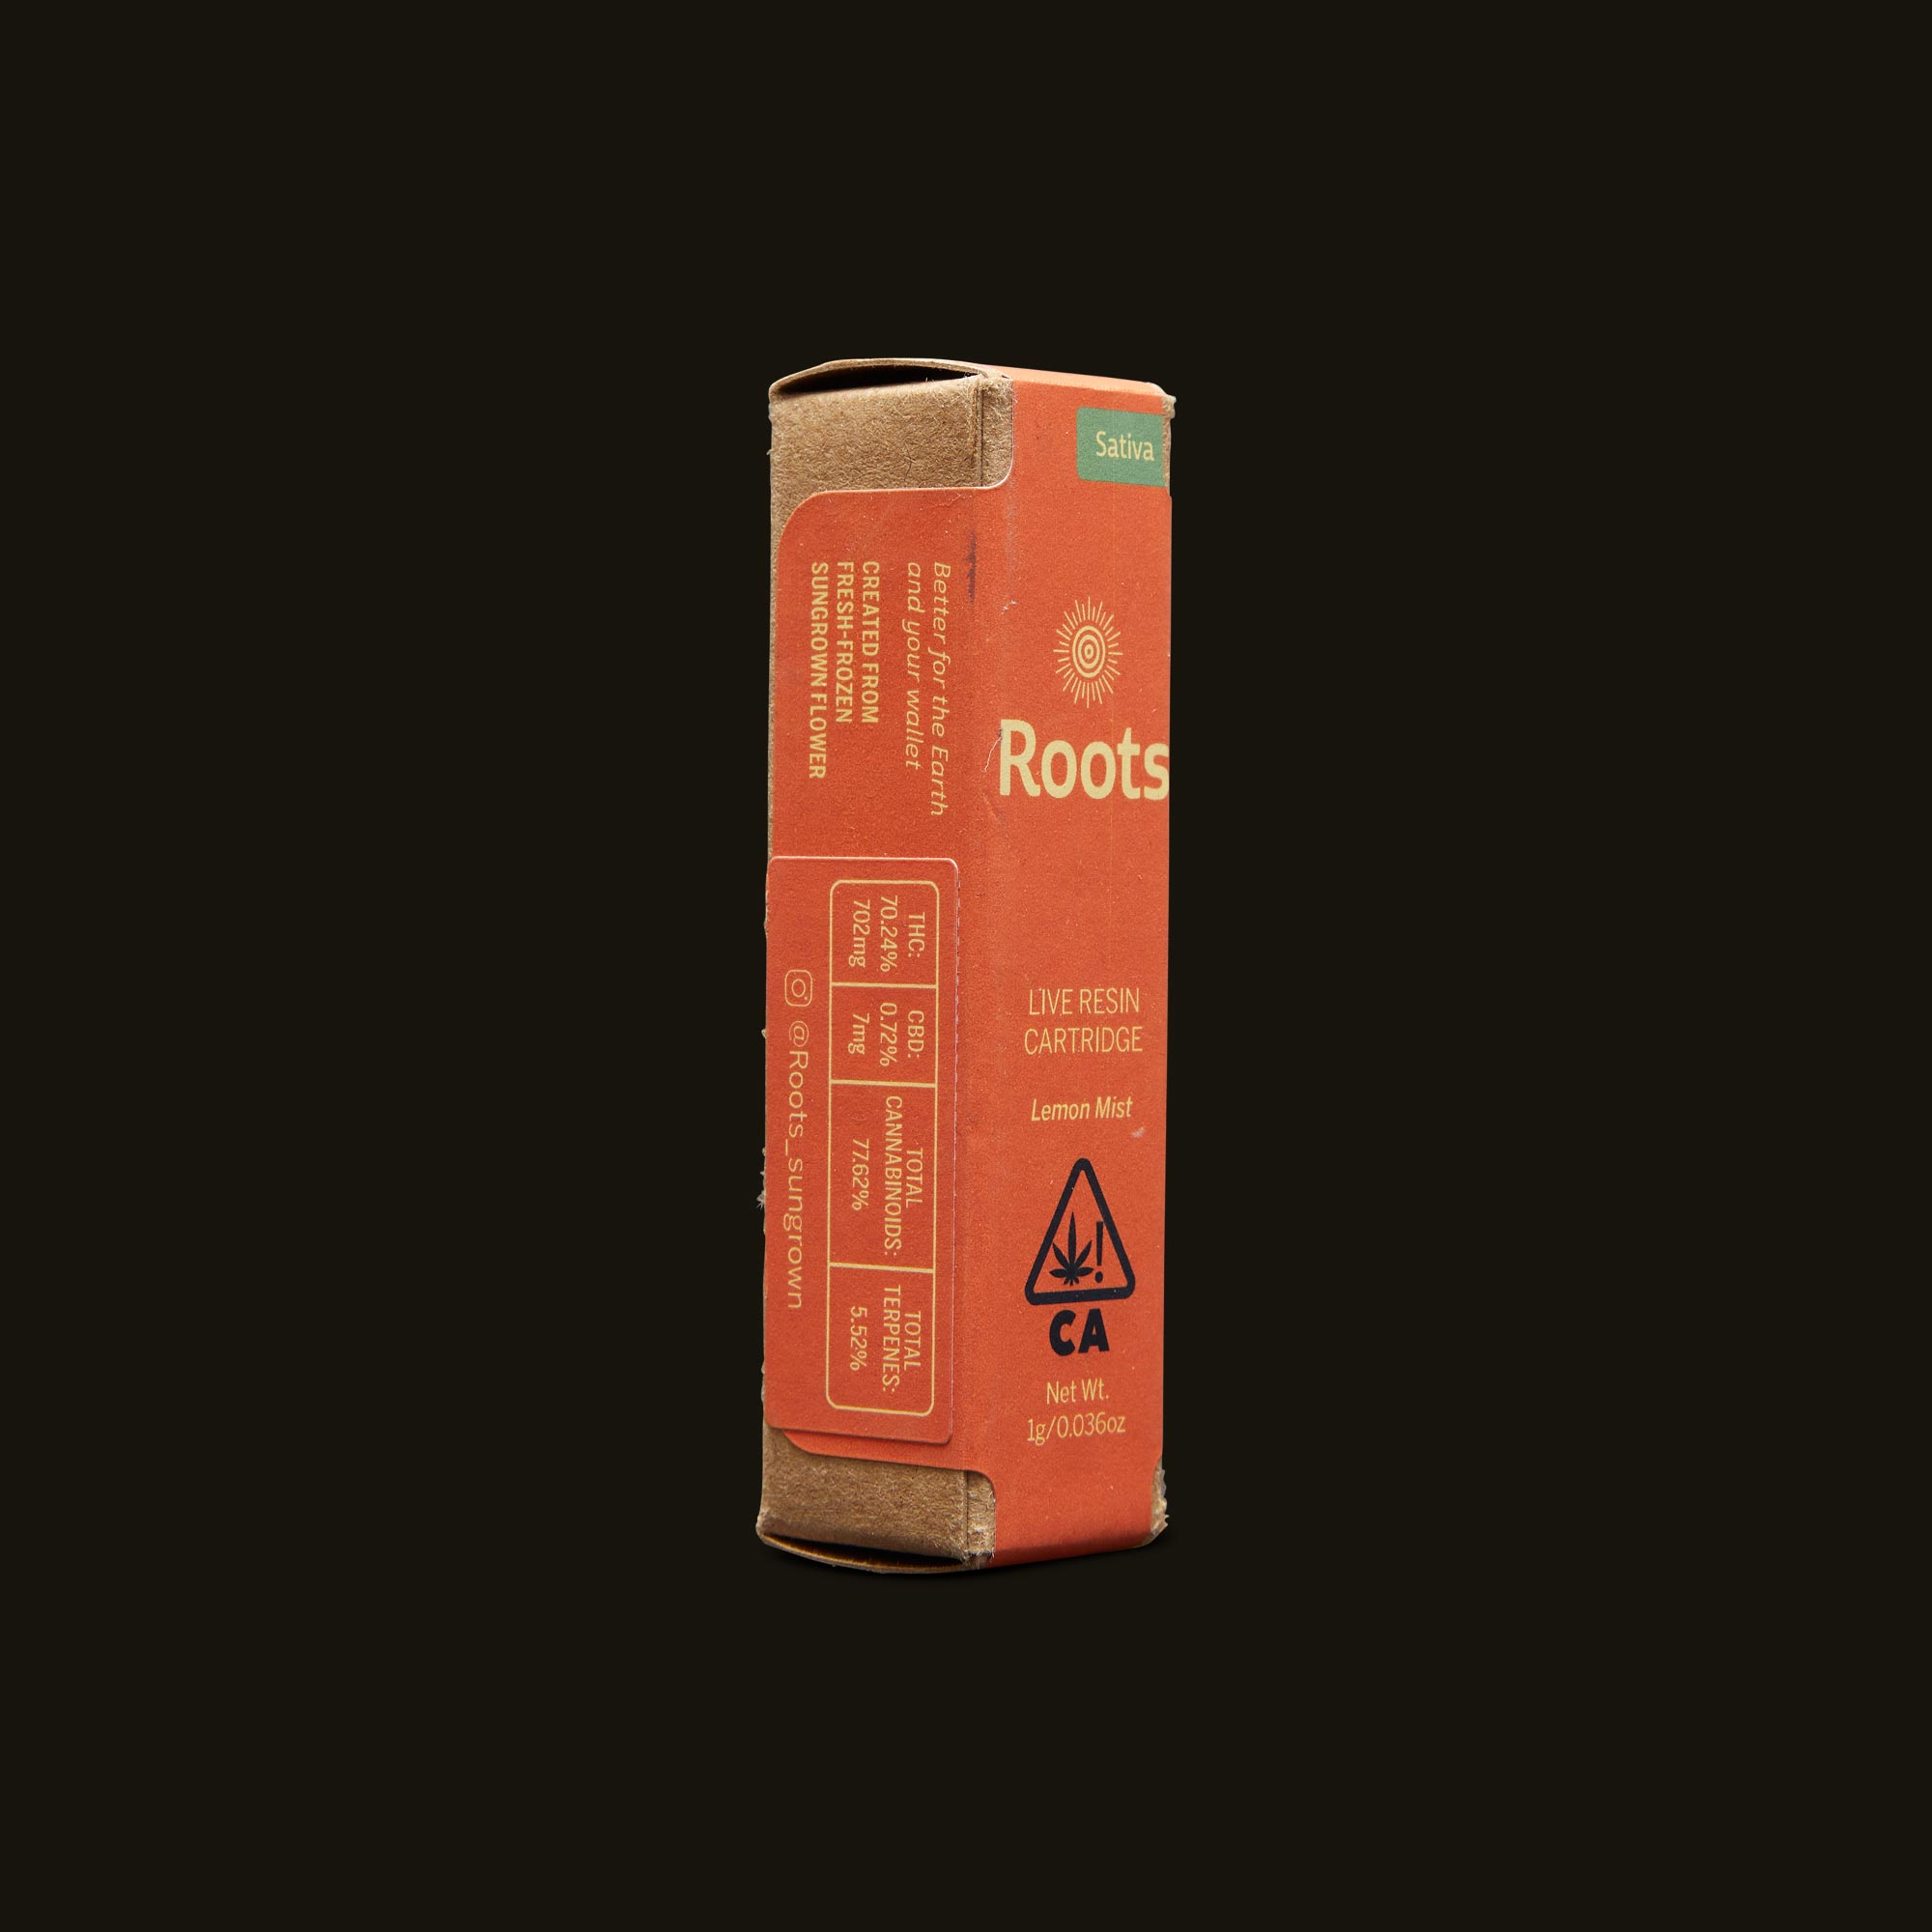 Roots Lemon Mist Live Resin Cartridge Side Packaging